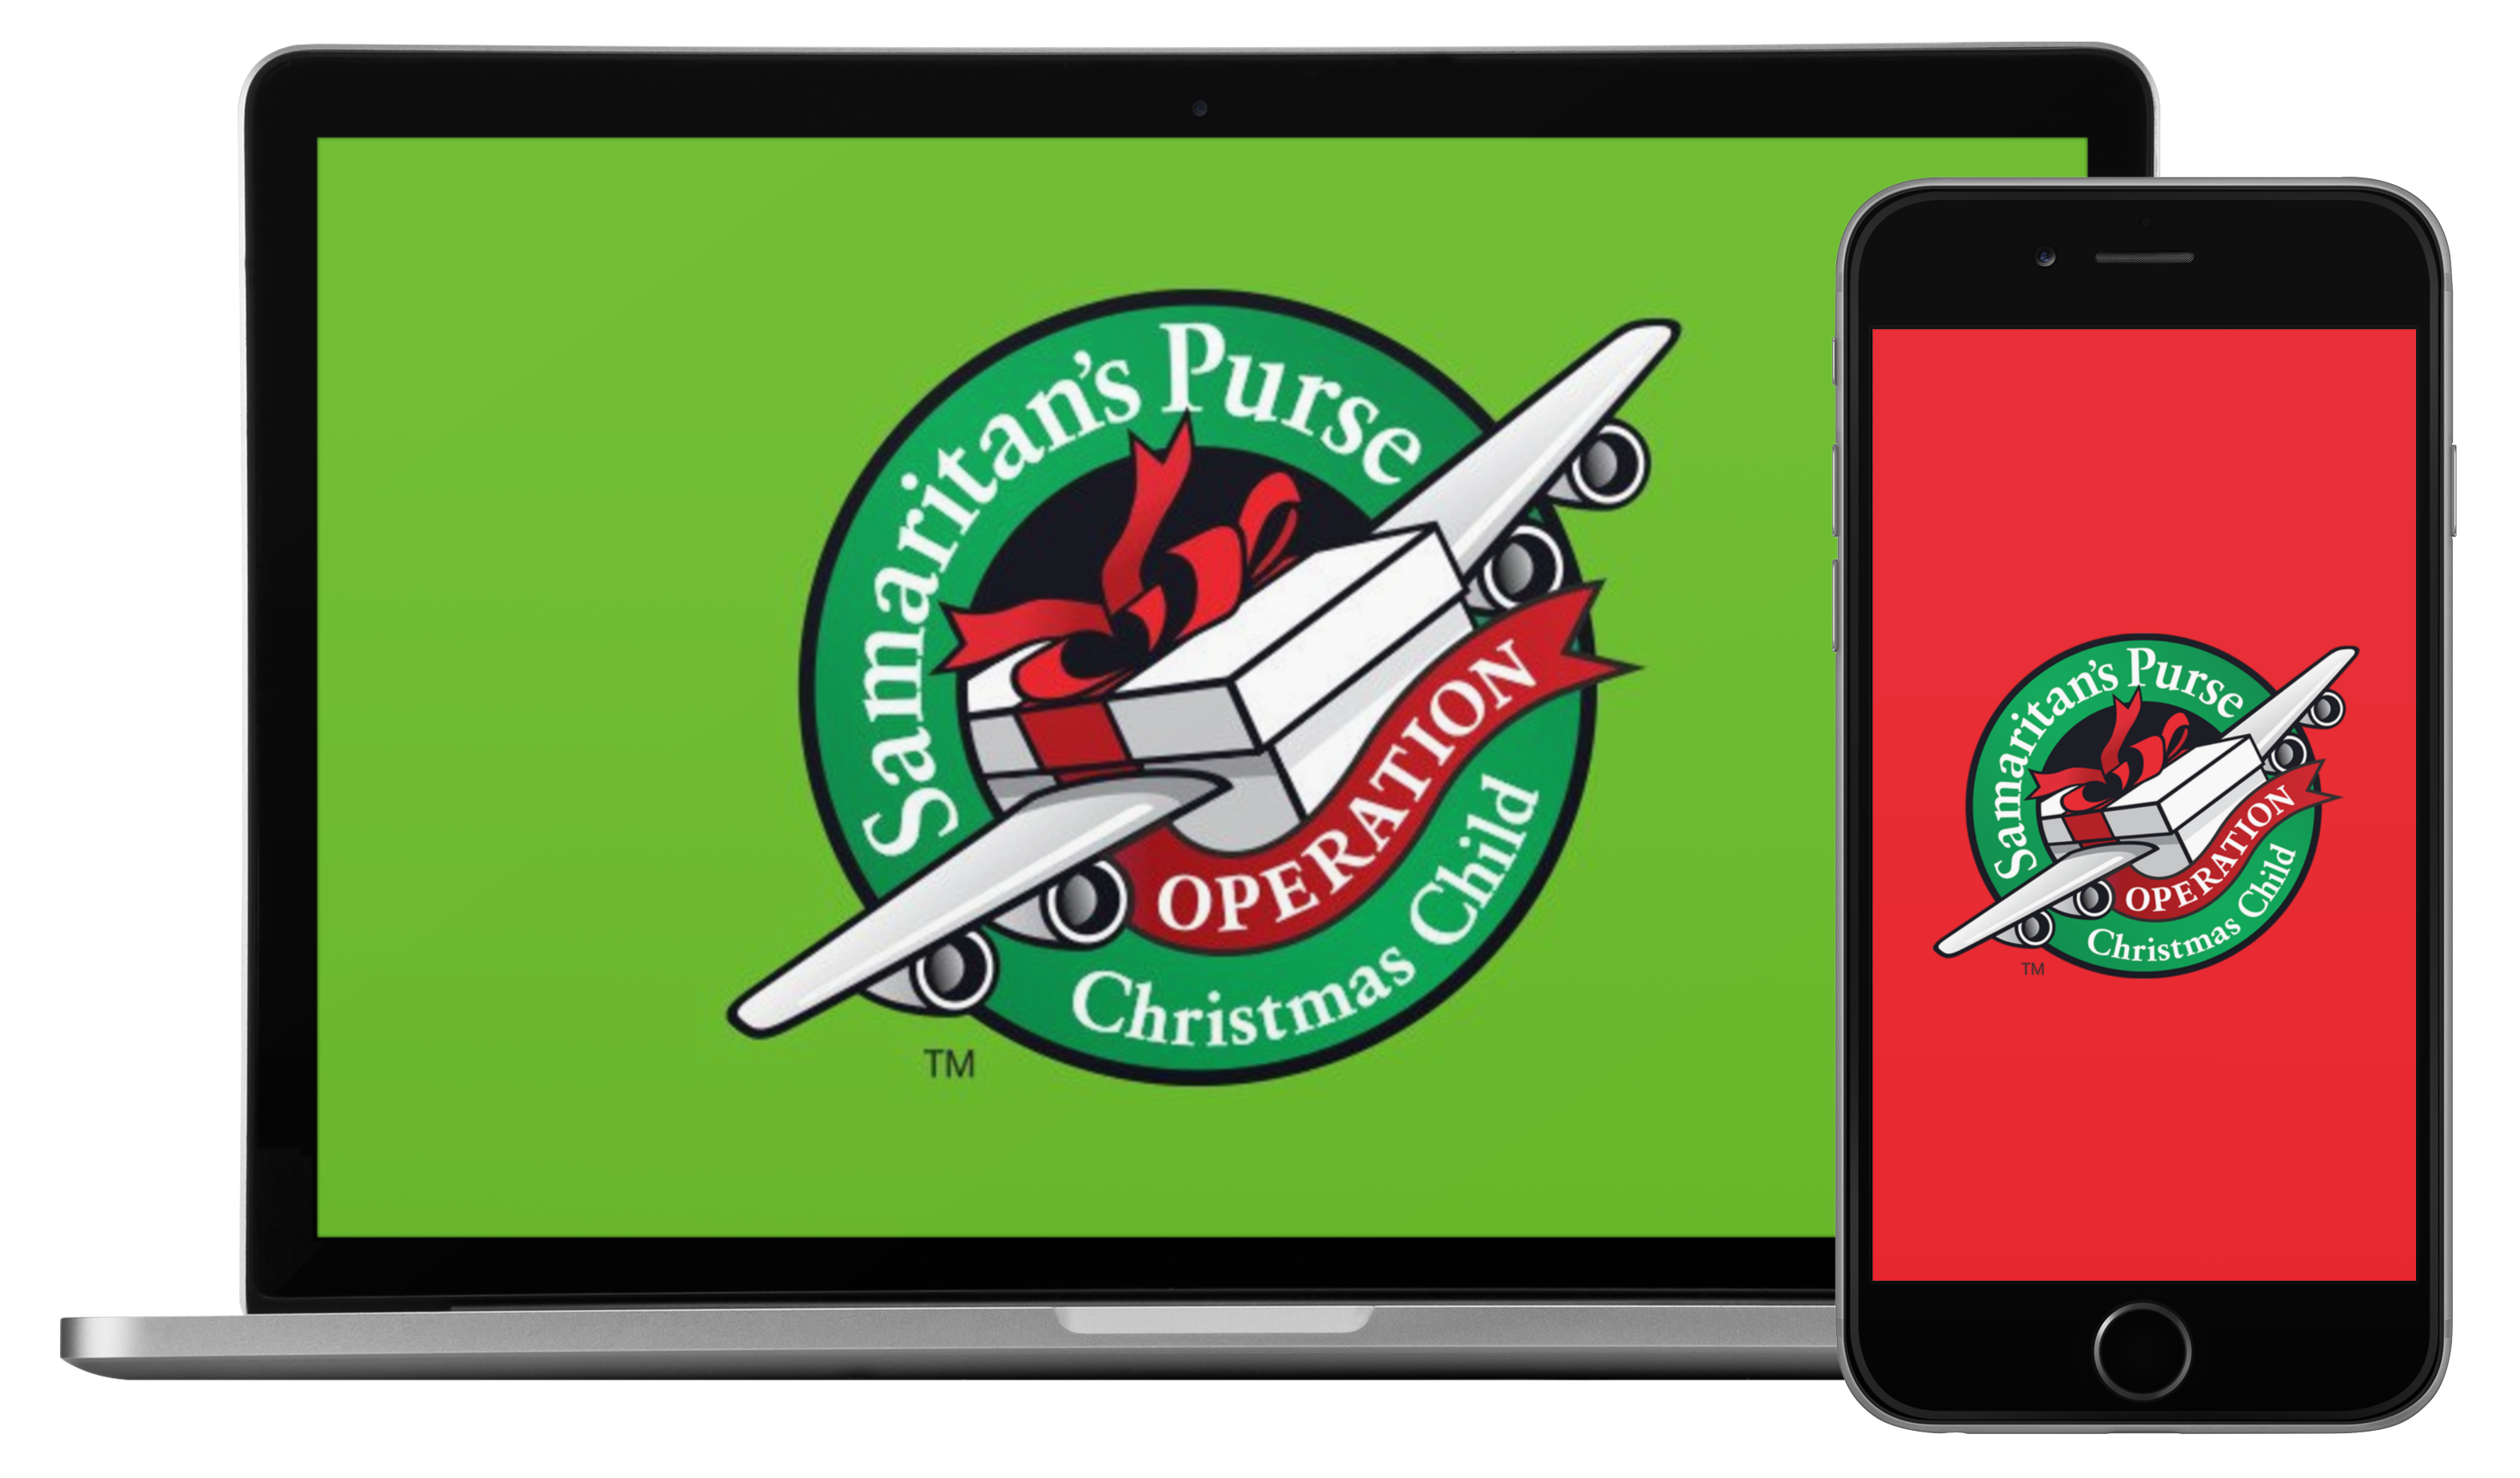 iphone-in-portrait-position-and-macbook-pro-over-a-flat-background-mockup-a12314-1-e1620298470454 Samaritan's Purse